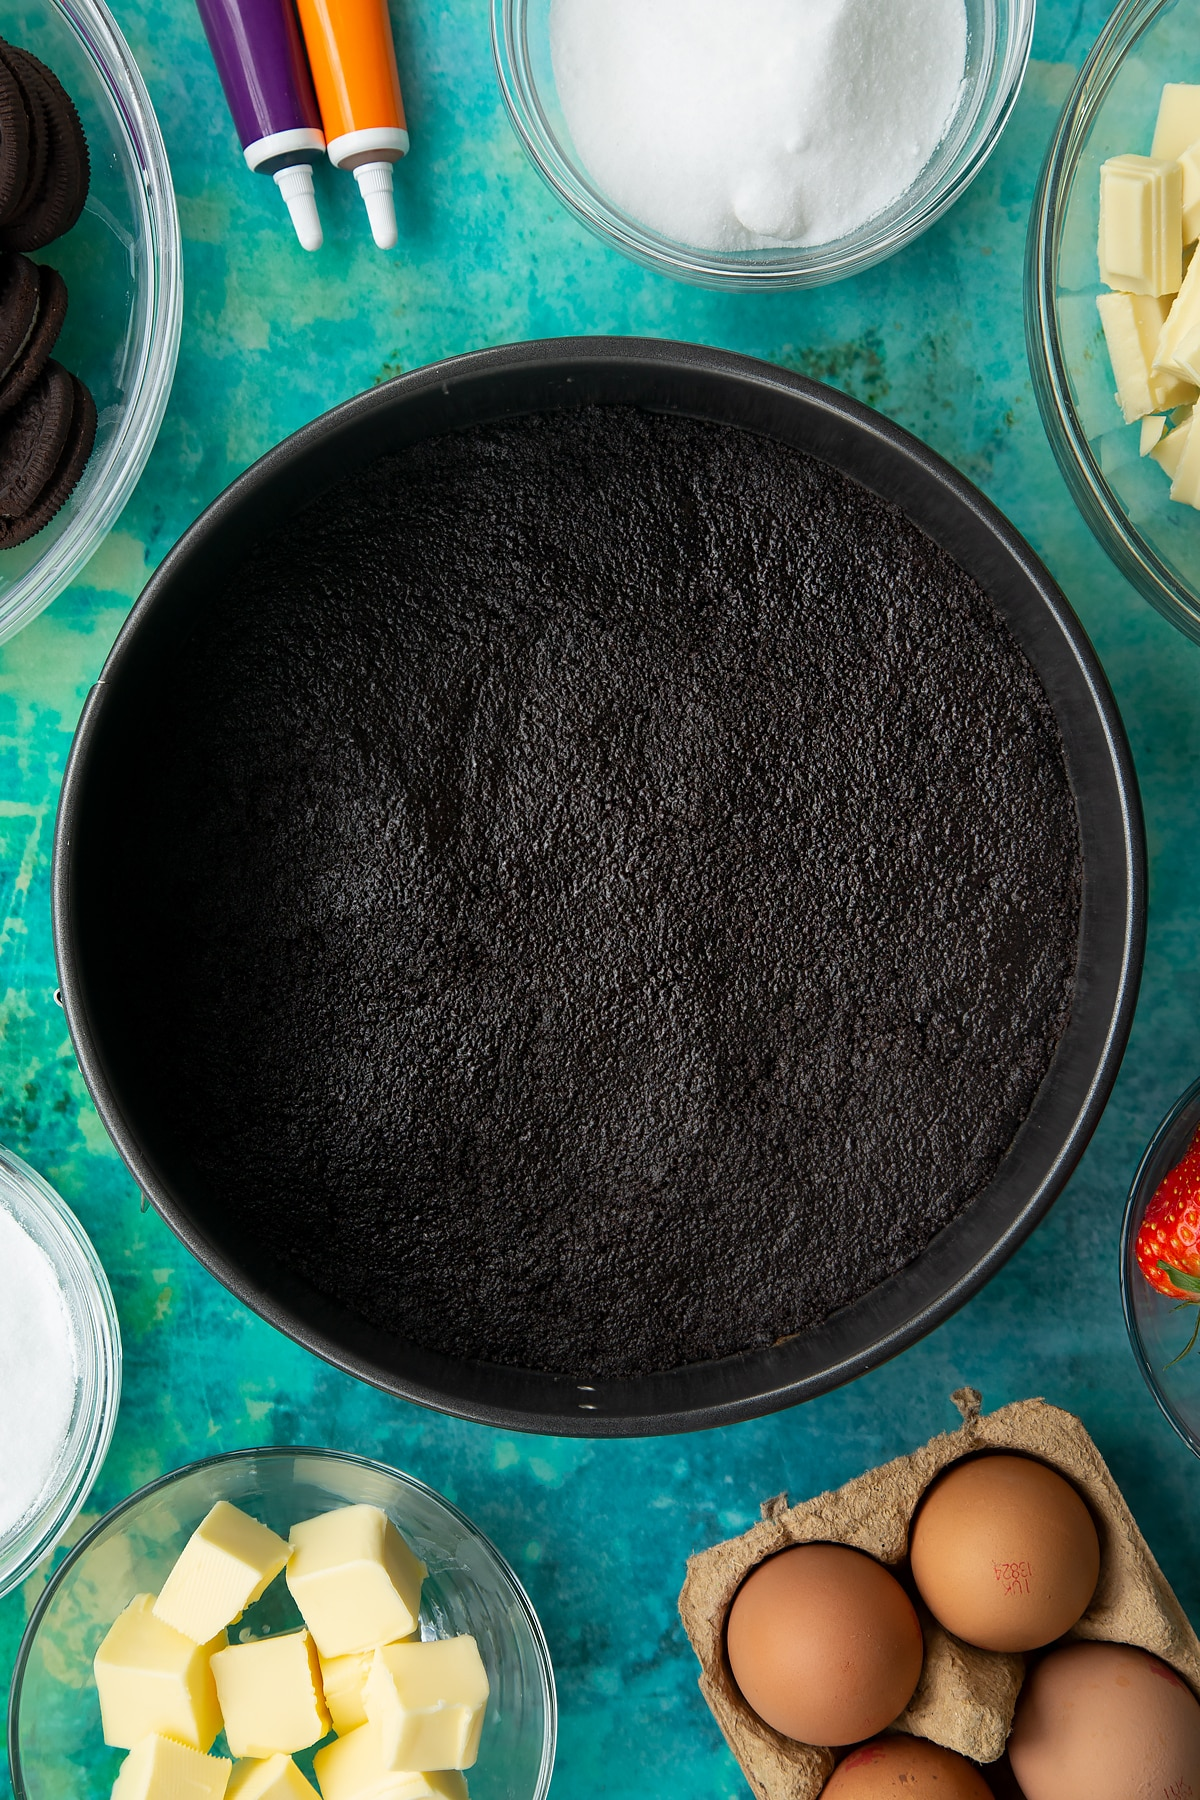 Oreo biscuit pressed into the base of a tin. Ingredients to make Halloween cheesecake surround the tin.